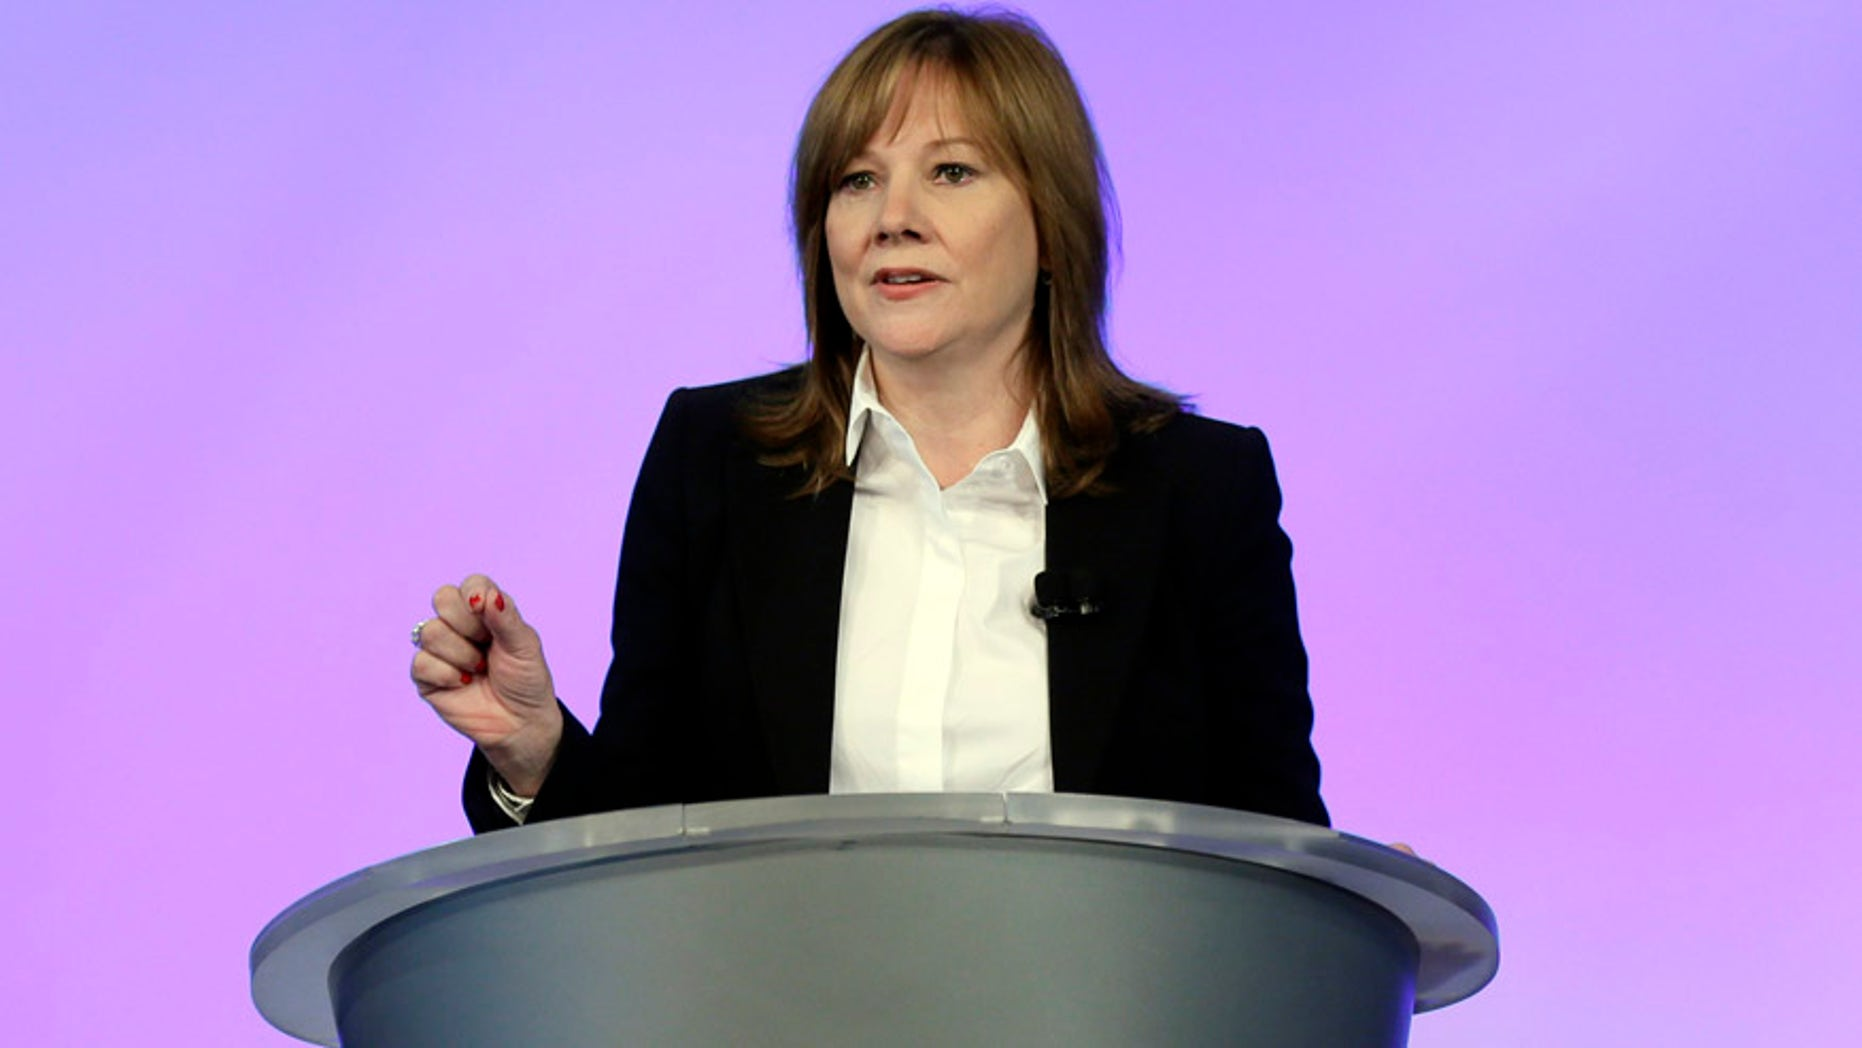 Communication on this topic: GM CEO Mary Barra said 2014 recall , gm-ceo-mary-barra-said-2014-recall/